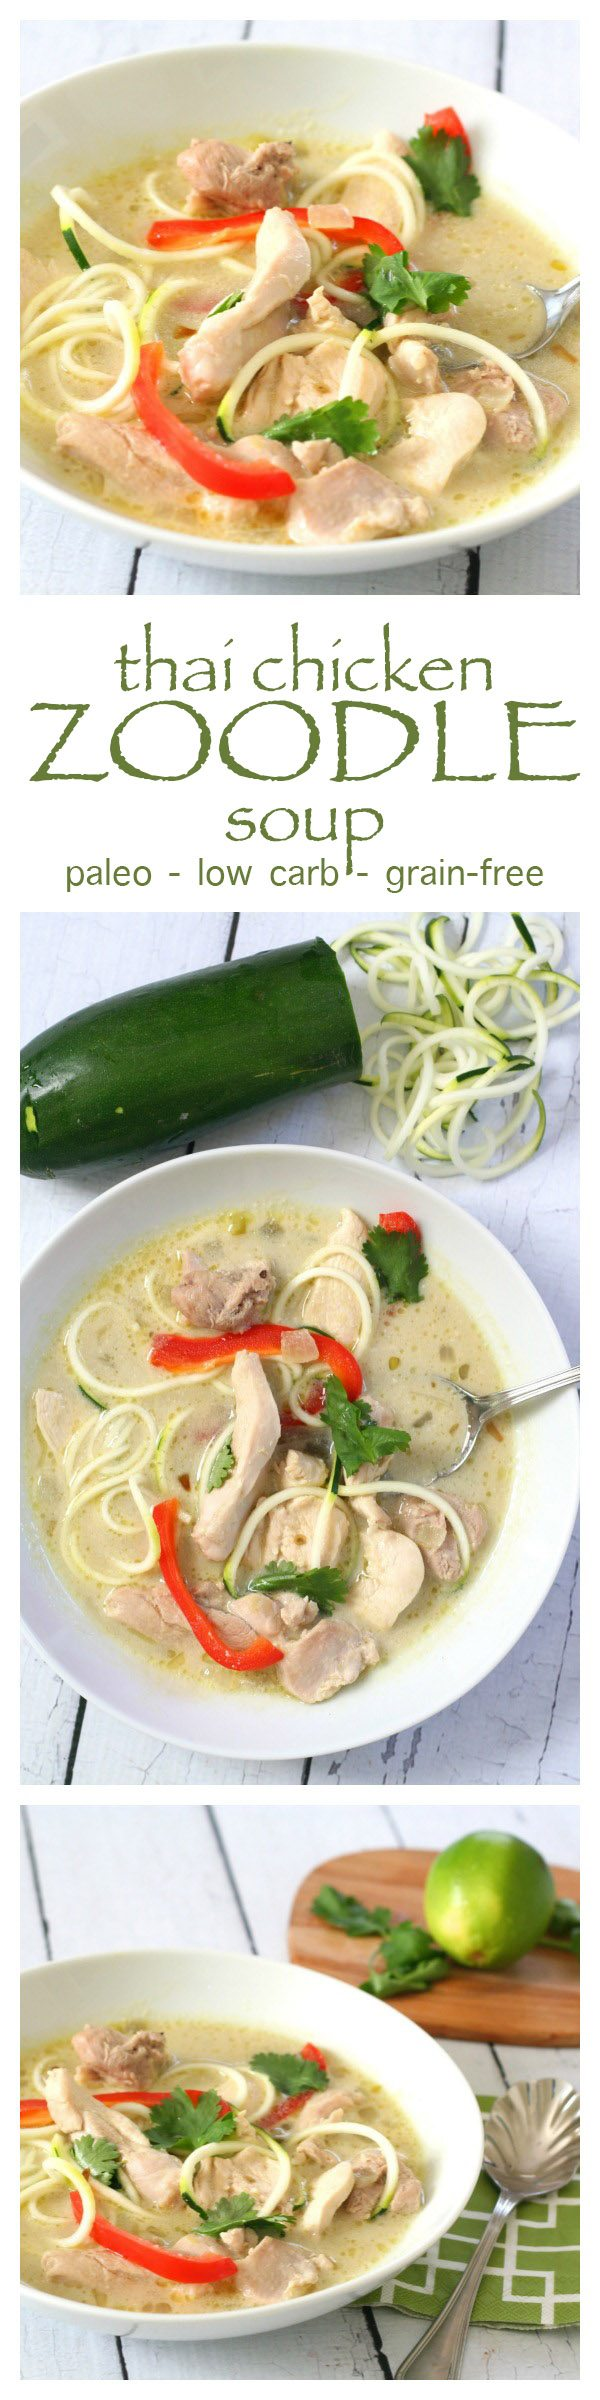 Low Carb Thai Chicken Zoodle Soup